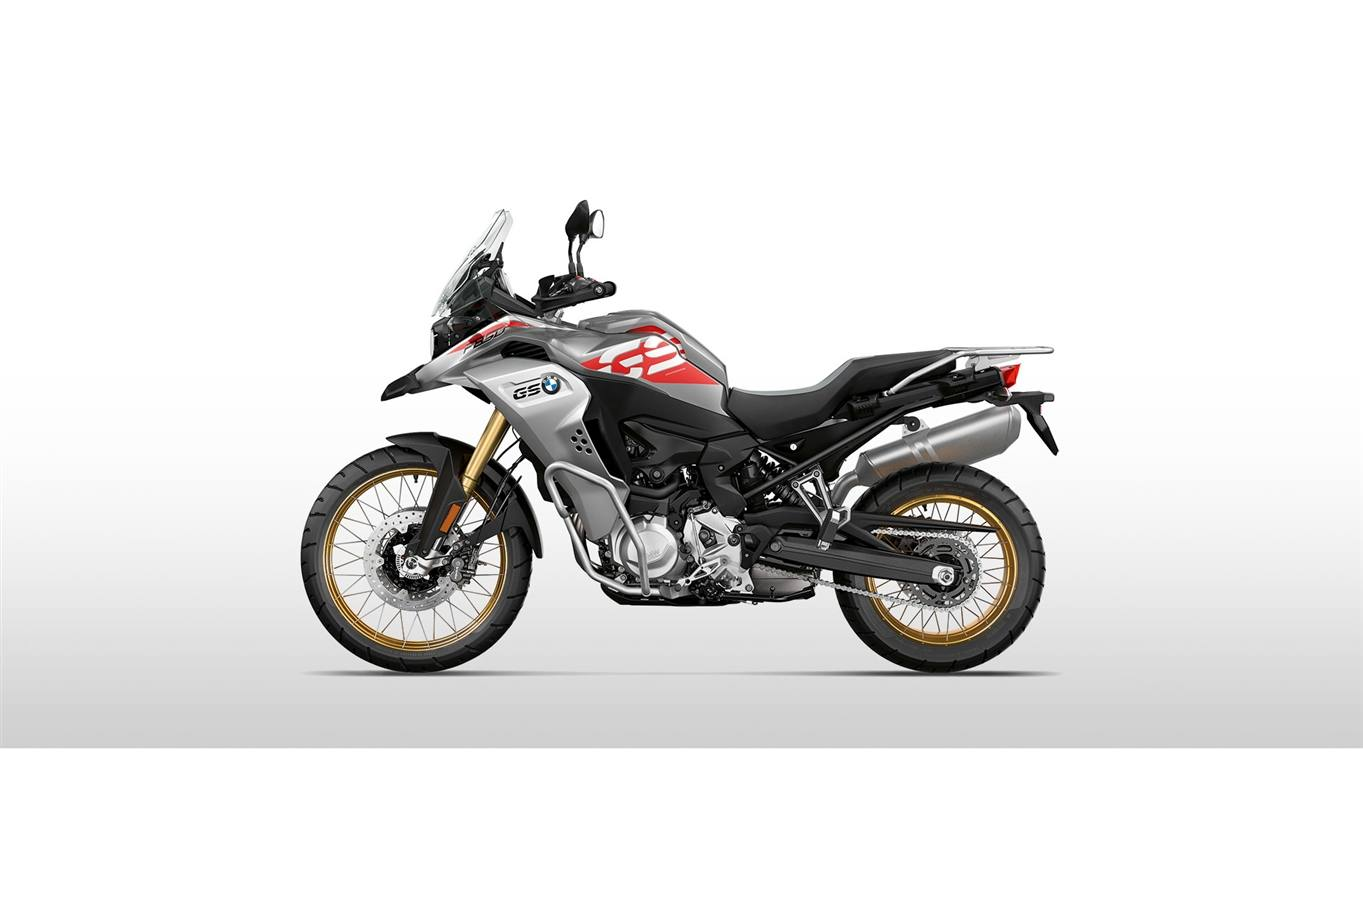 Pleasing 2019 Bmw F 850 Gs Adventure Exclusive Style For Sale In Unemploymentrelief Wooden Chair Designs For Living Room Unemploymentrelieforg